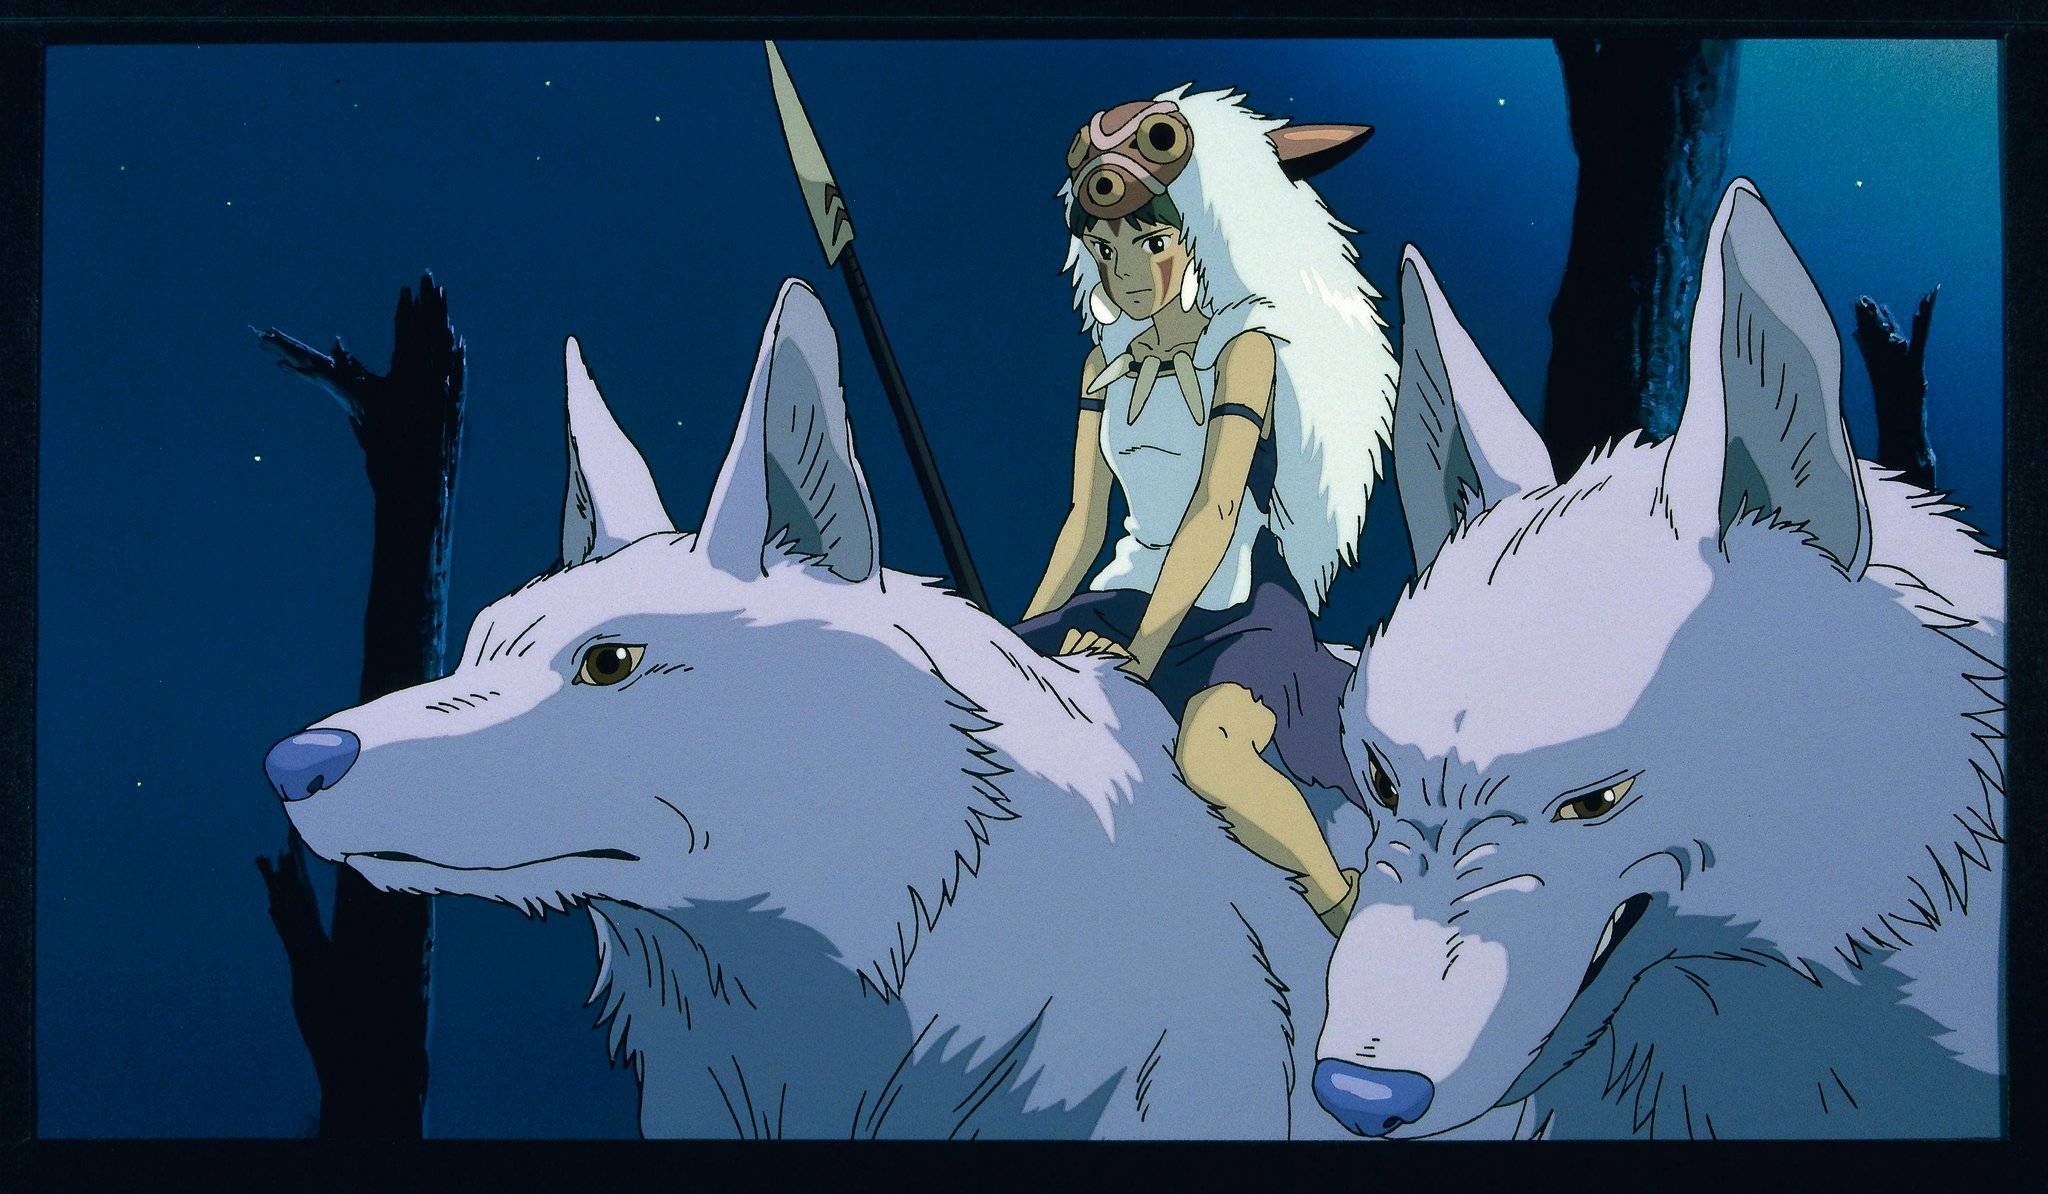 RT @Film4: Studio Ghibli fans! We're screening Miyazaki's Princess Mononoke at @Somersethouse in August: https://t.co/jN7jjF1Cq5 http://t.c…